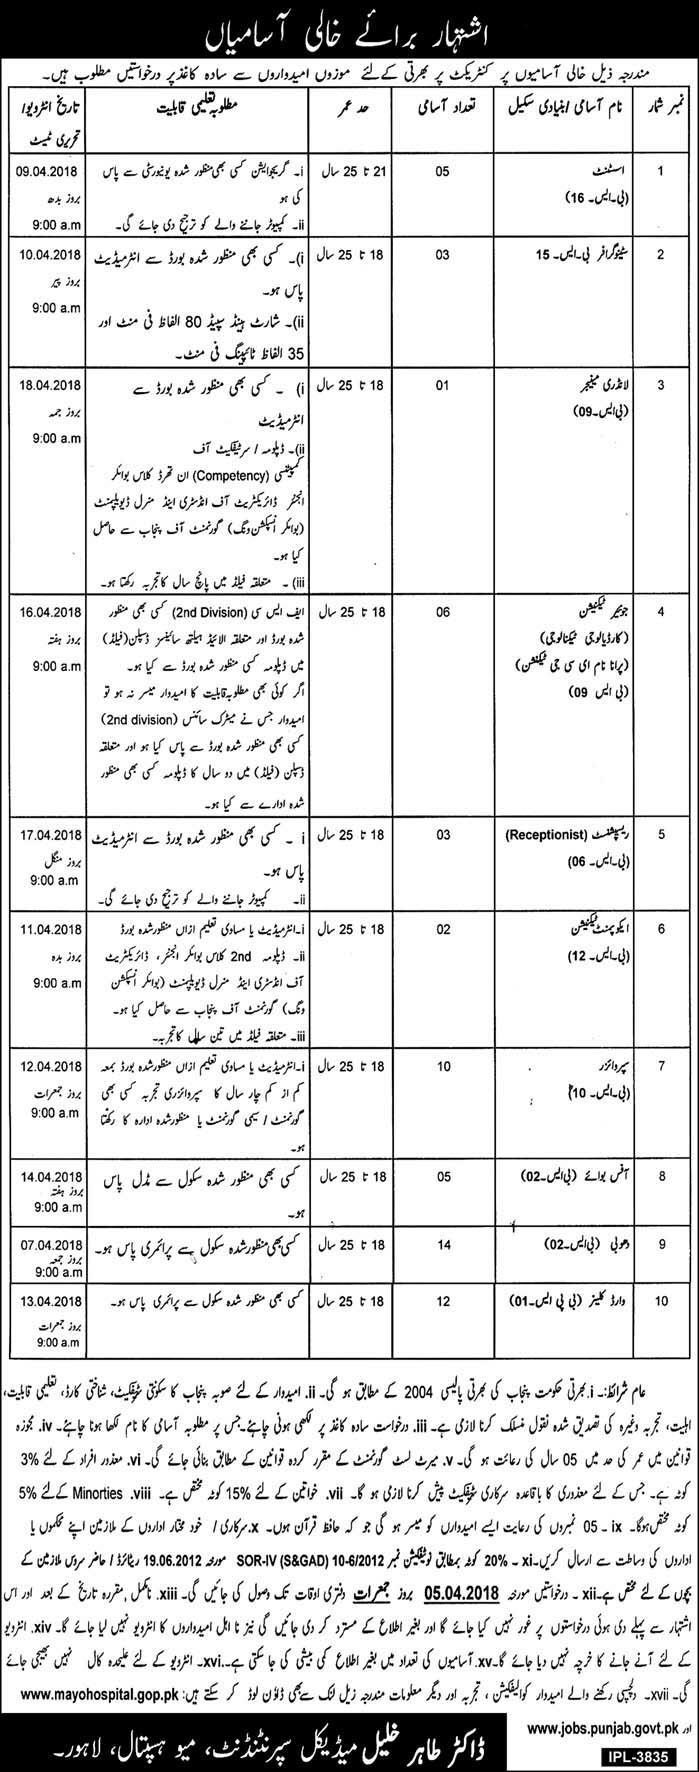 Mayo Hospital Lahore 61Jobs Daily Express Newspaper 27 March 2018